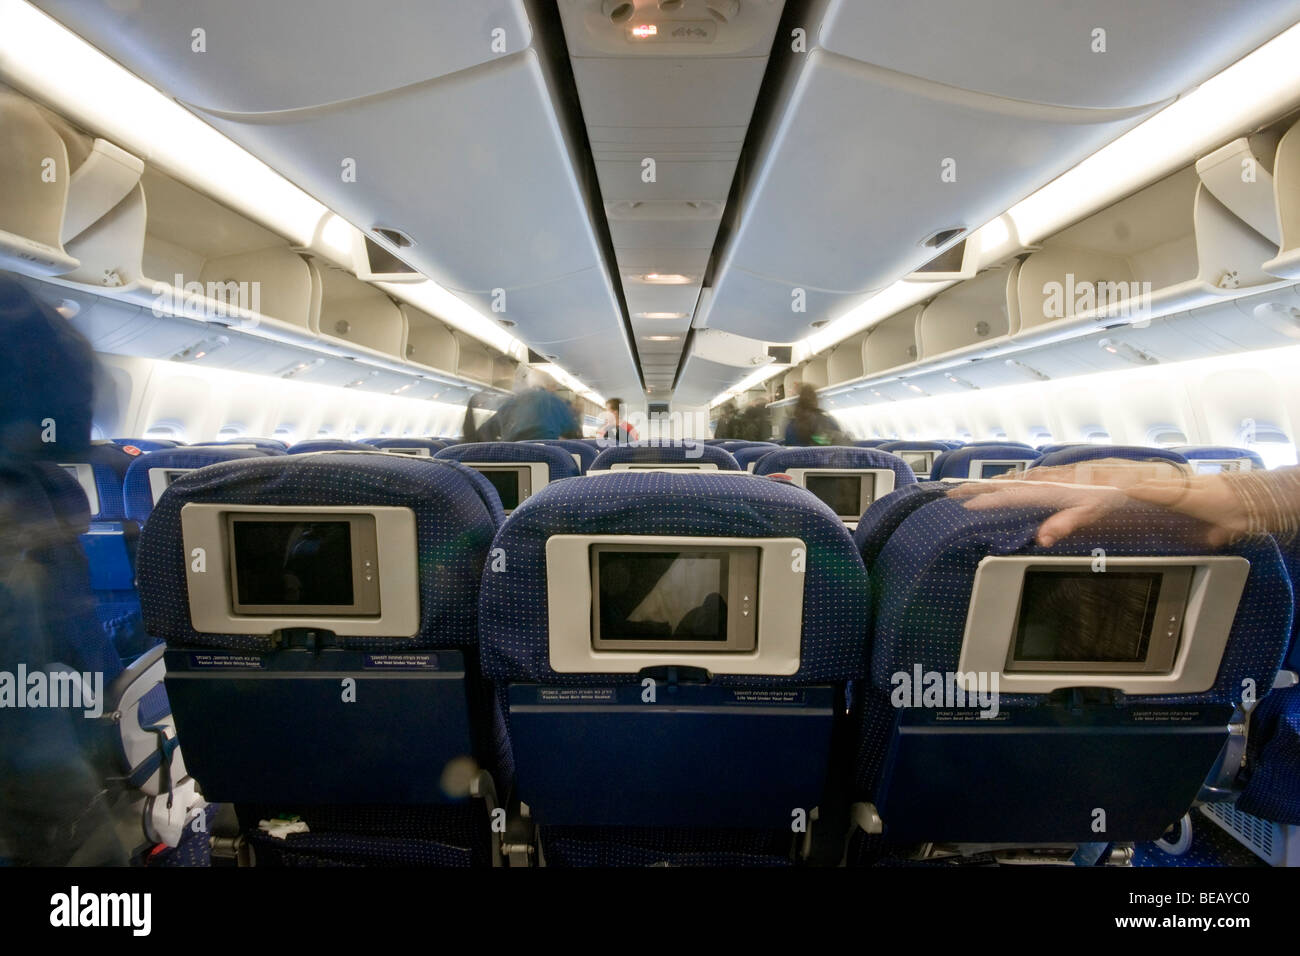 plane interior of the economy class in an el al boeing 767 airplane